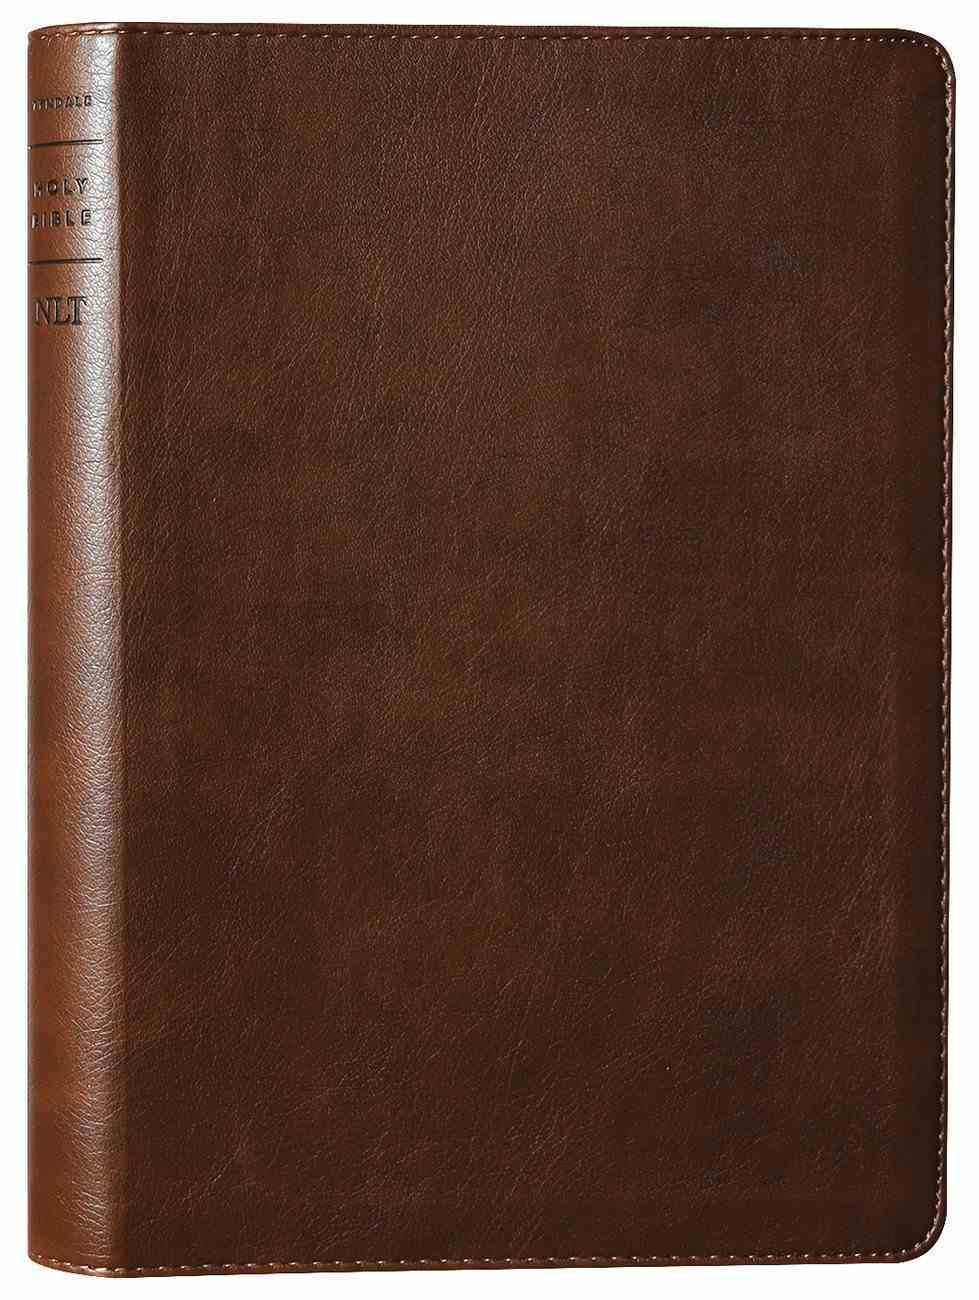 NLT Large Print Thinline Reference Bible Rustic Brown Red Letter (Filament Enabled Edition ) Imitation Leather